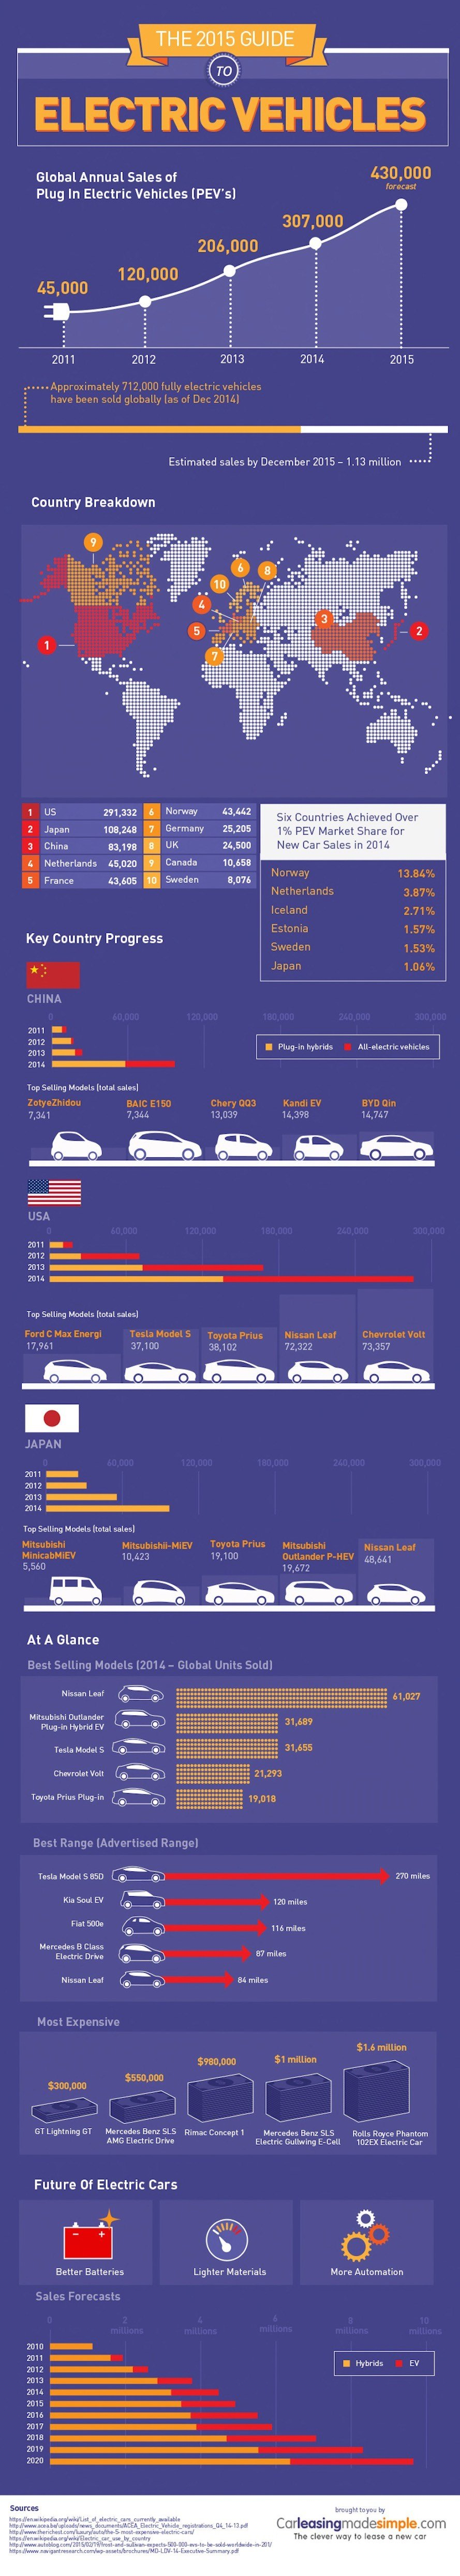 electric vehicles, electric cars, tesla, nissan leaf, infographic, reader submitted content